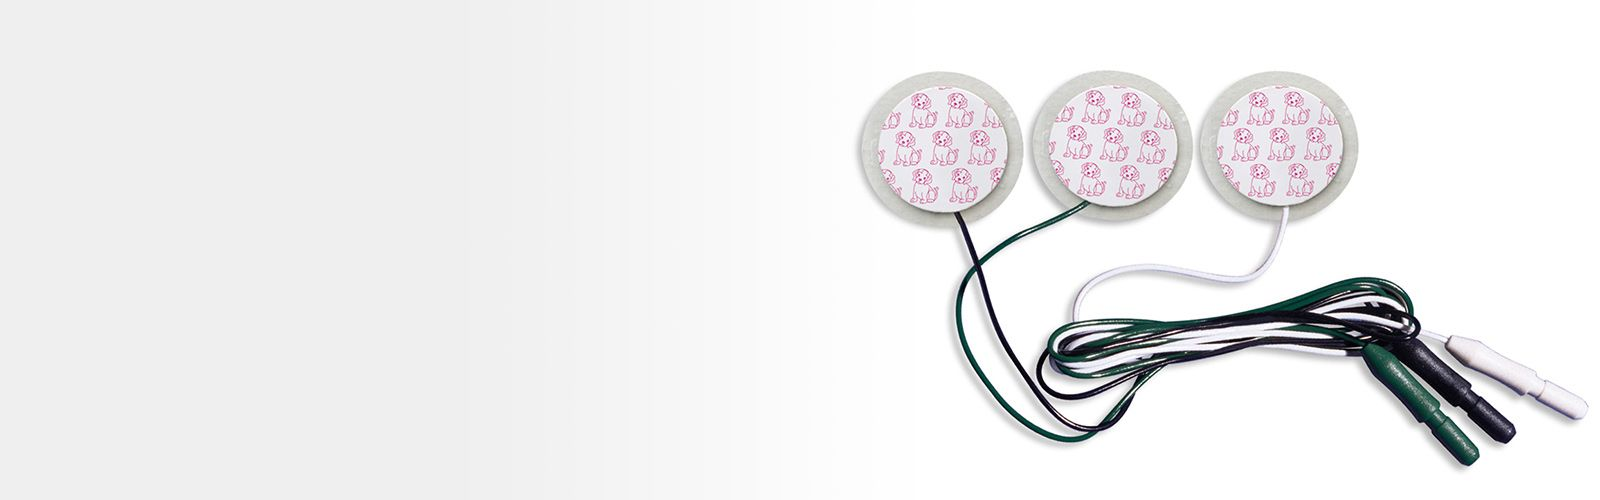 Neonatal and Pediatric ECG Electrodes